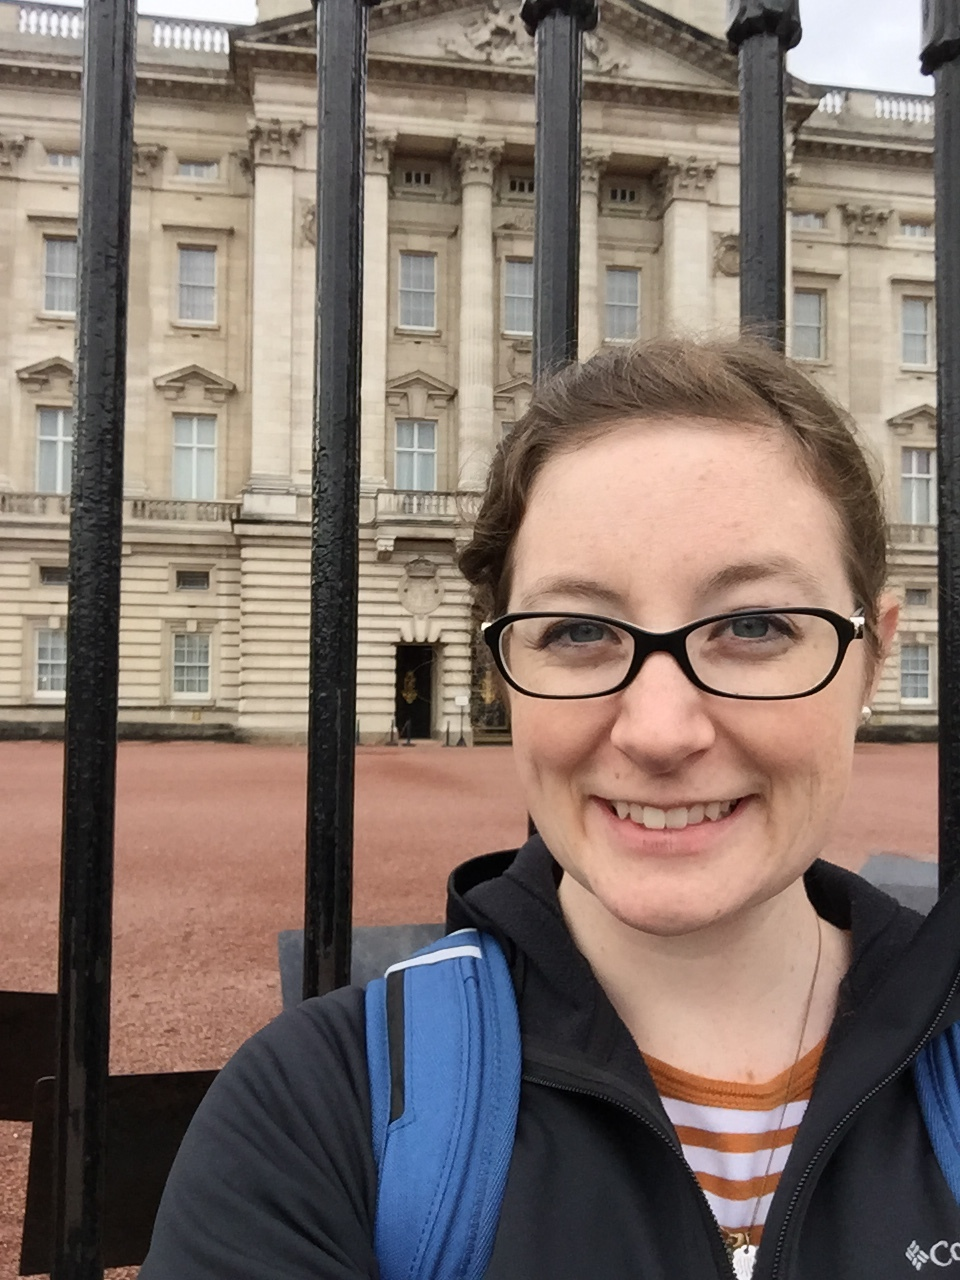 Mostly my face, with a side of Buckingham Palace. Also: the same jacket was worn for each of the above dastardly self portraits. Apparently I have a security blanket.